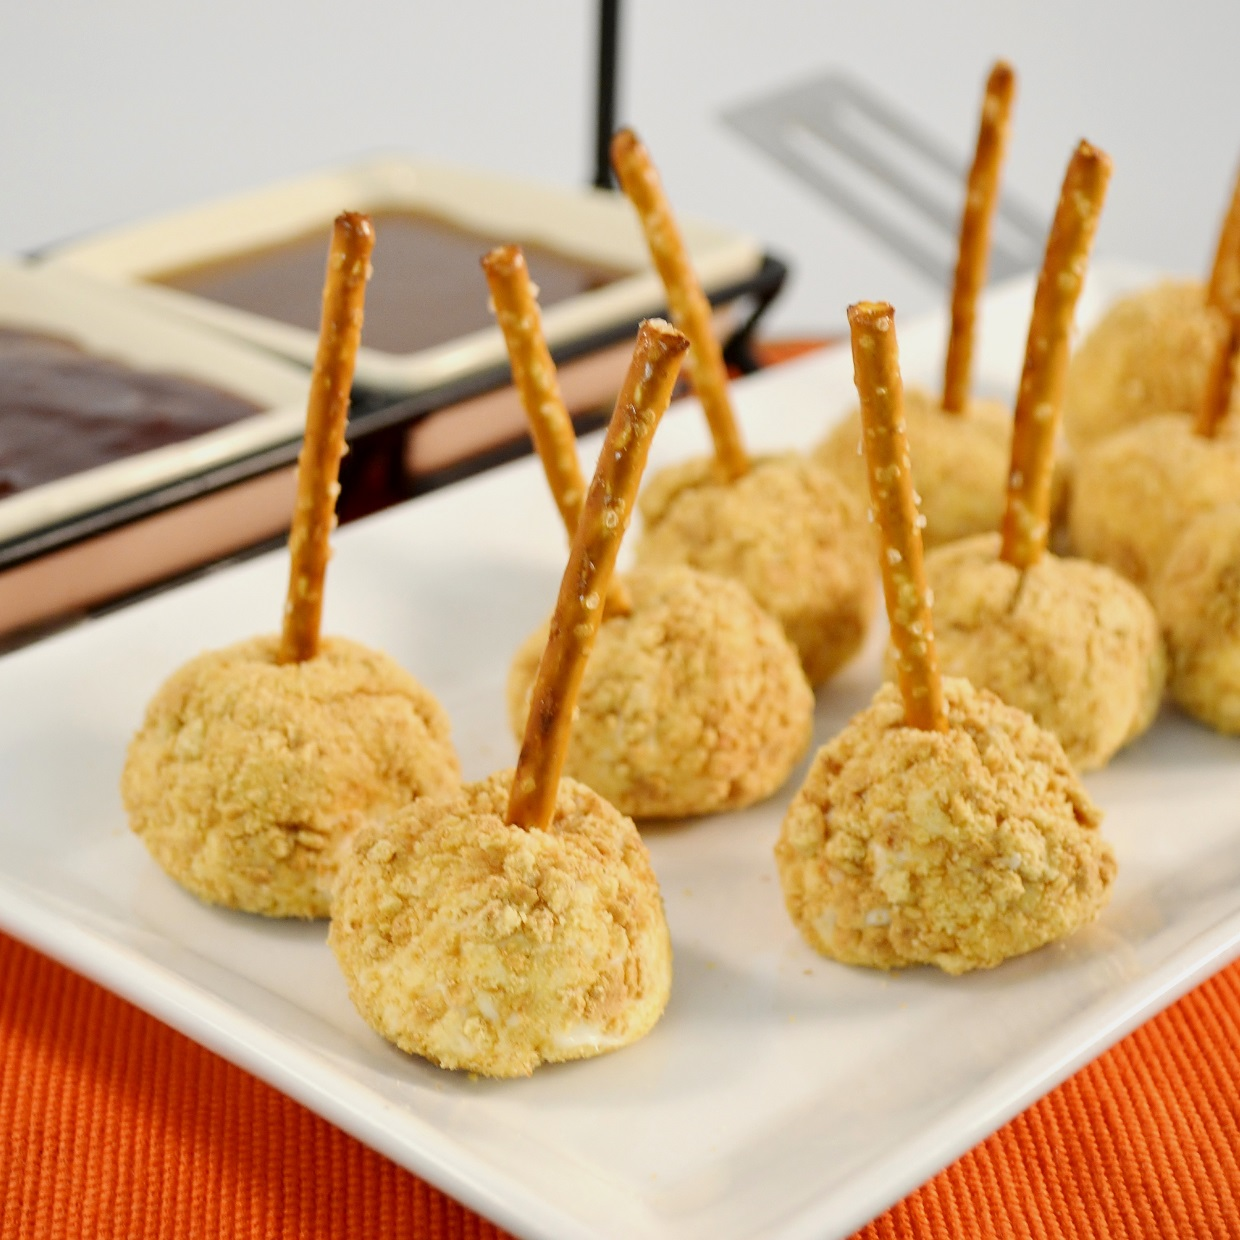 Delicious cheesecake pretzel bites made with Rada Cutlery products.